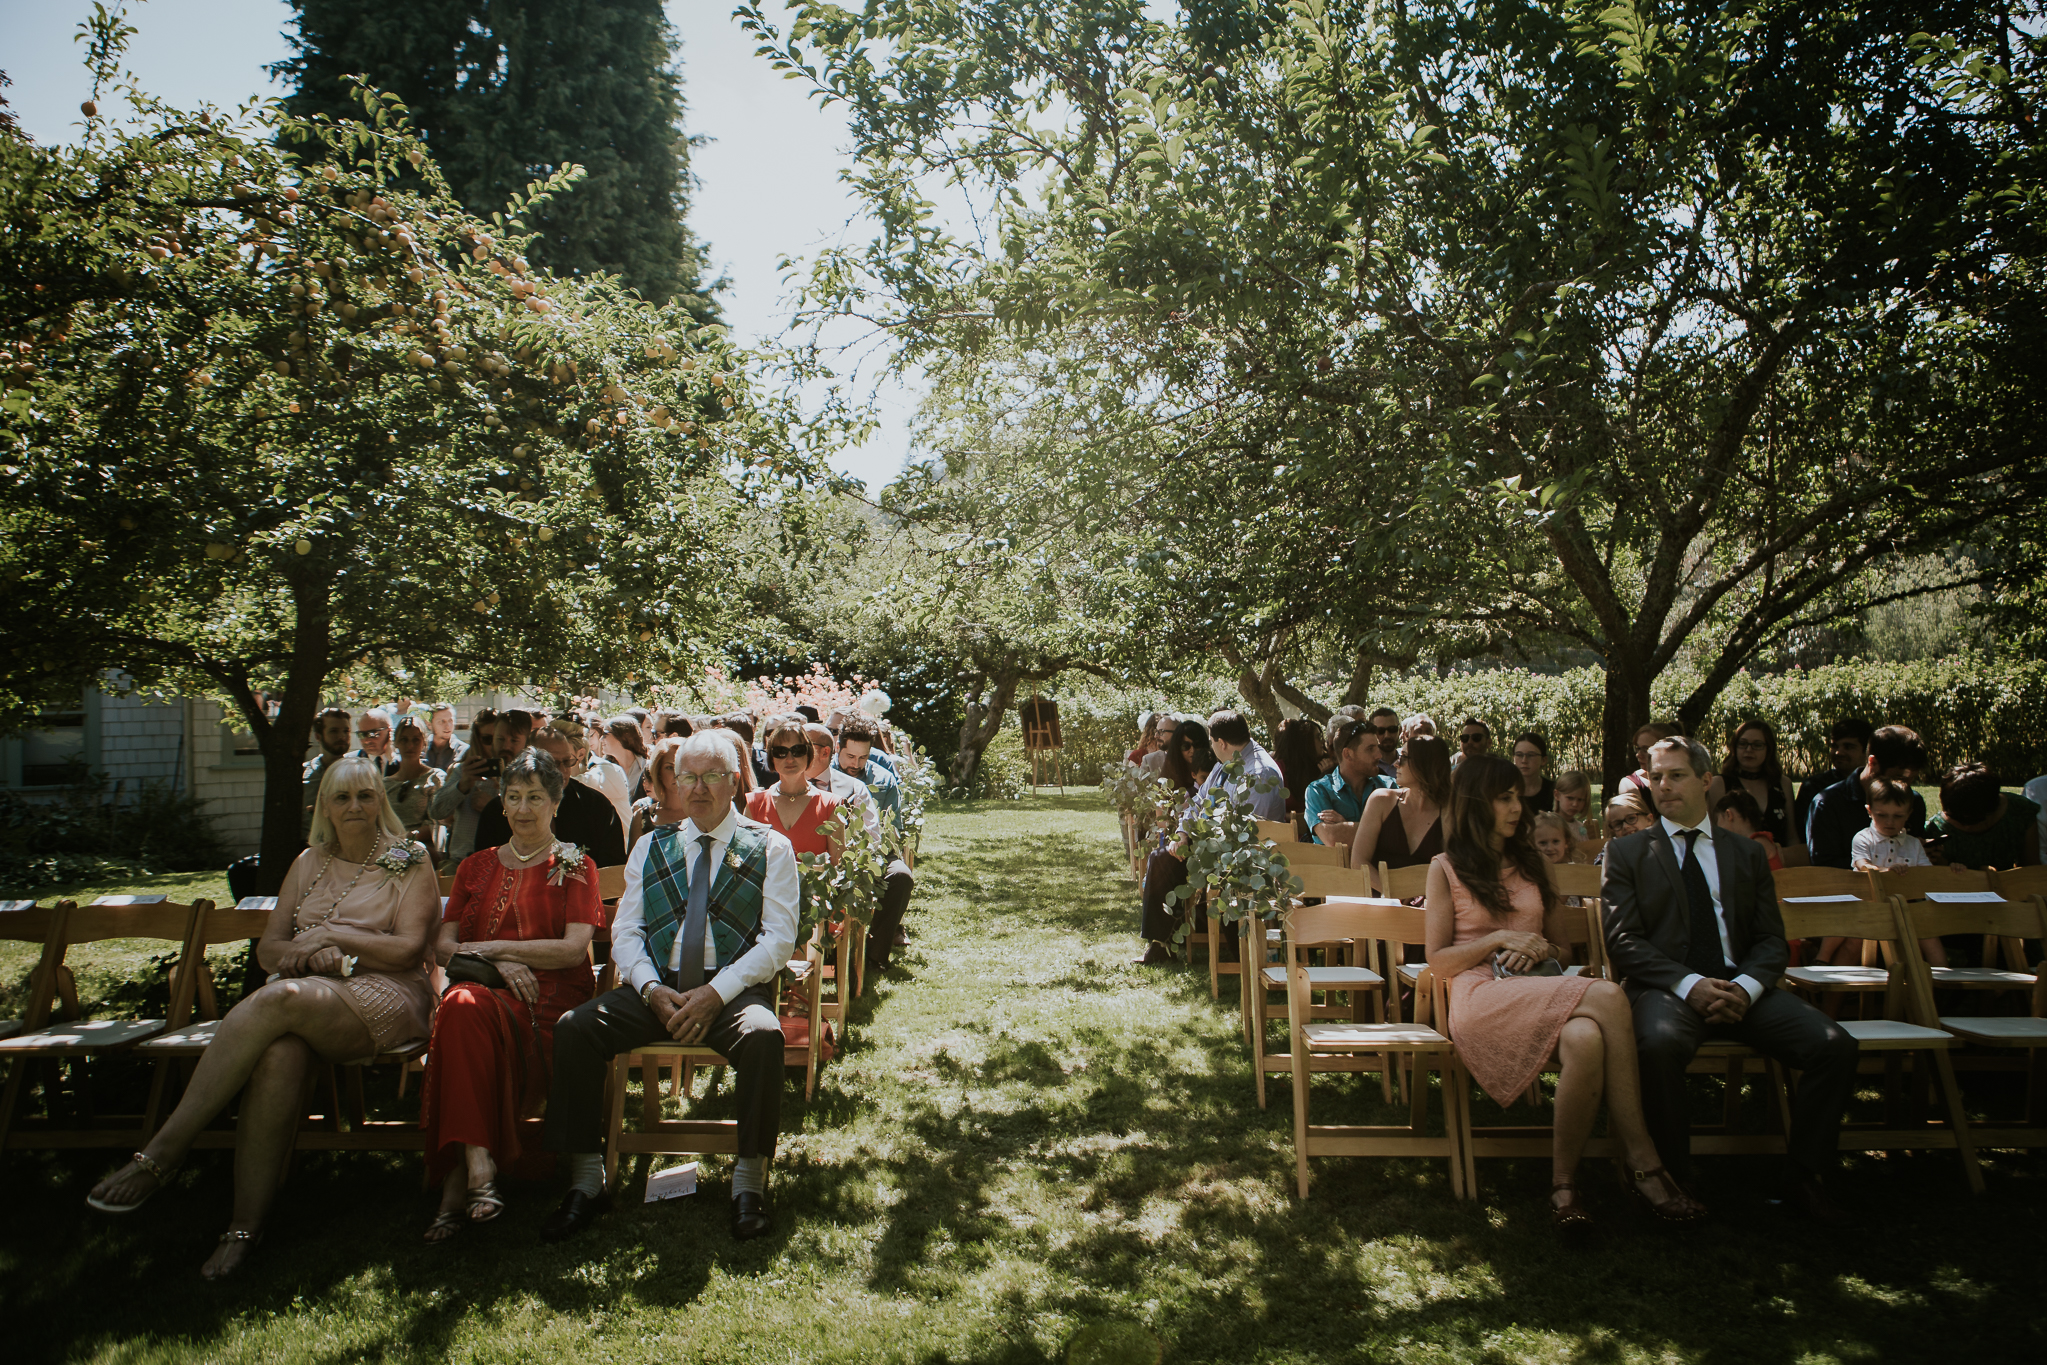 Ceremony site with seated guests under trees at Starling Lane Winery